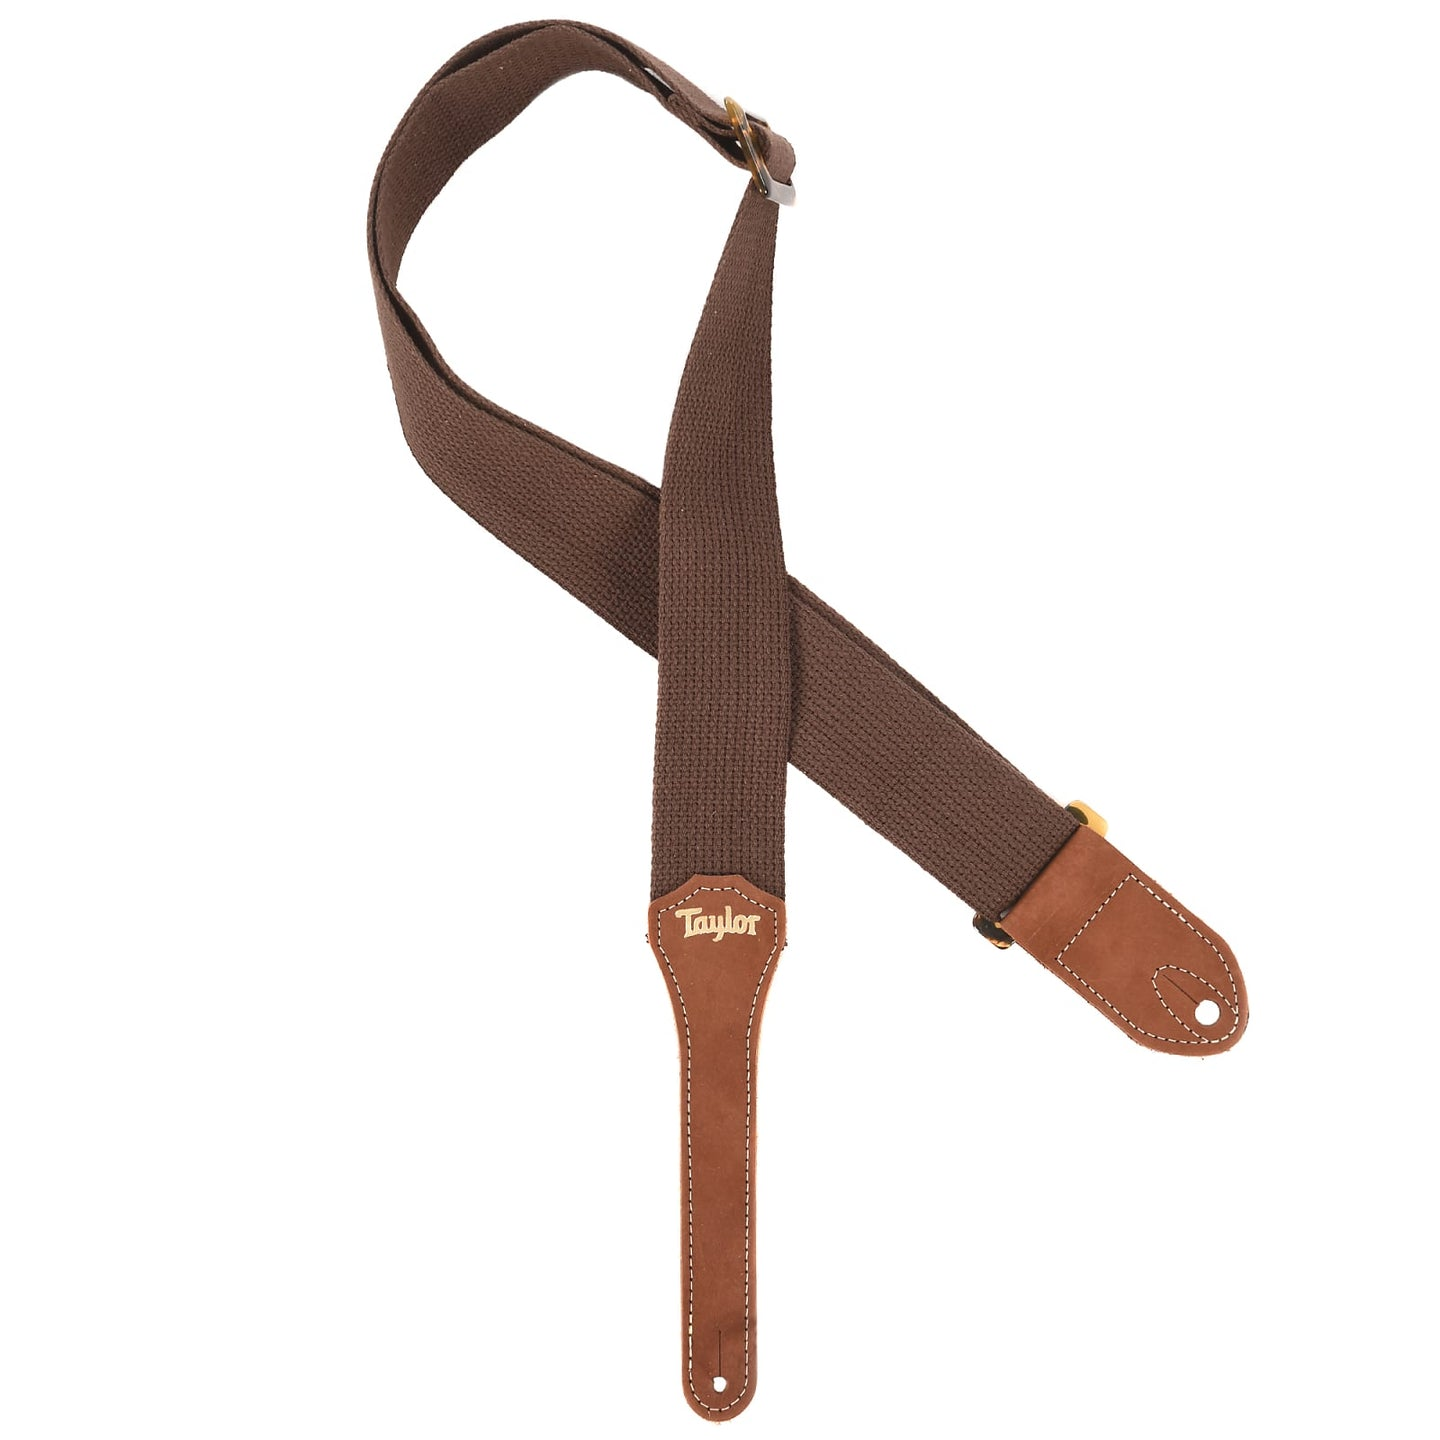 Taylor Strap, Chocolate Brown Cotton, 2